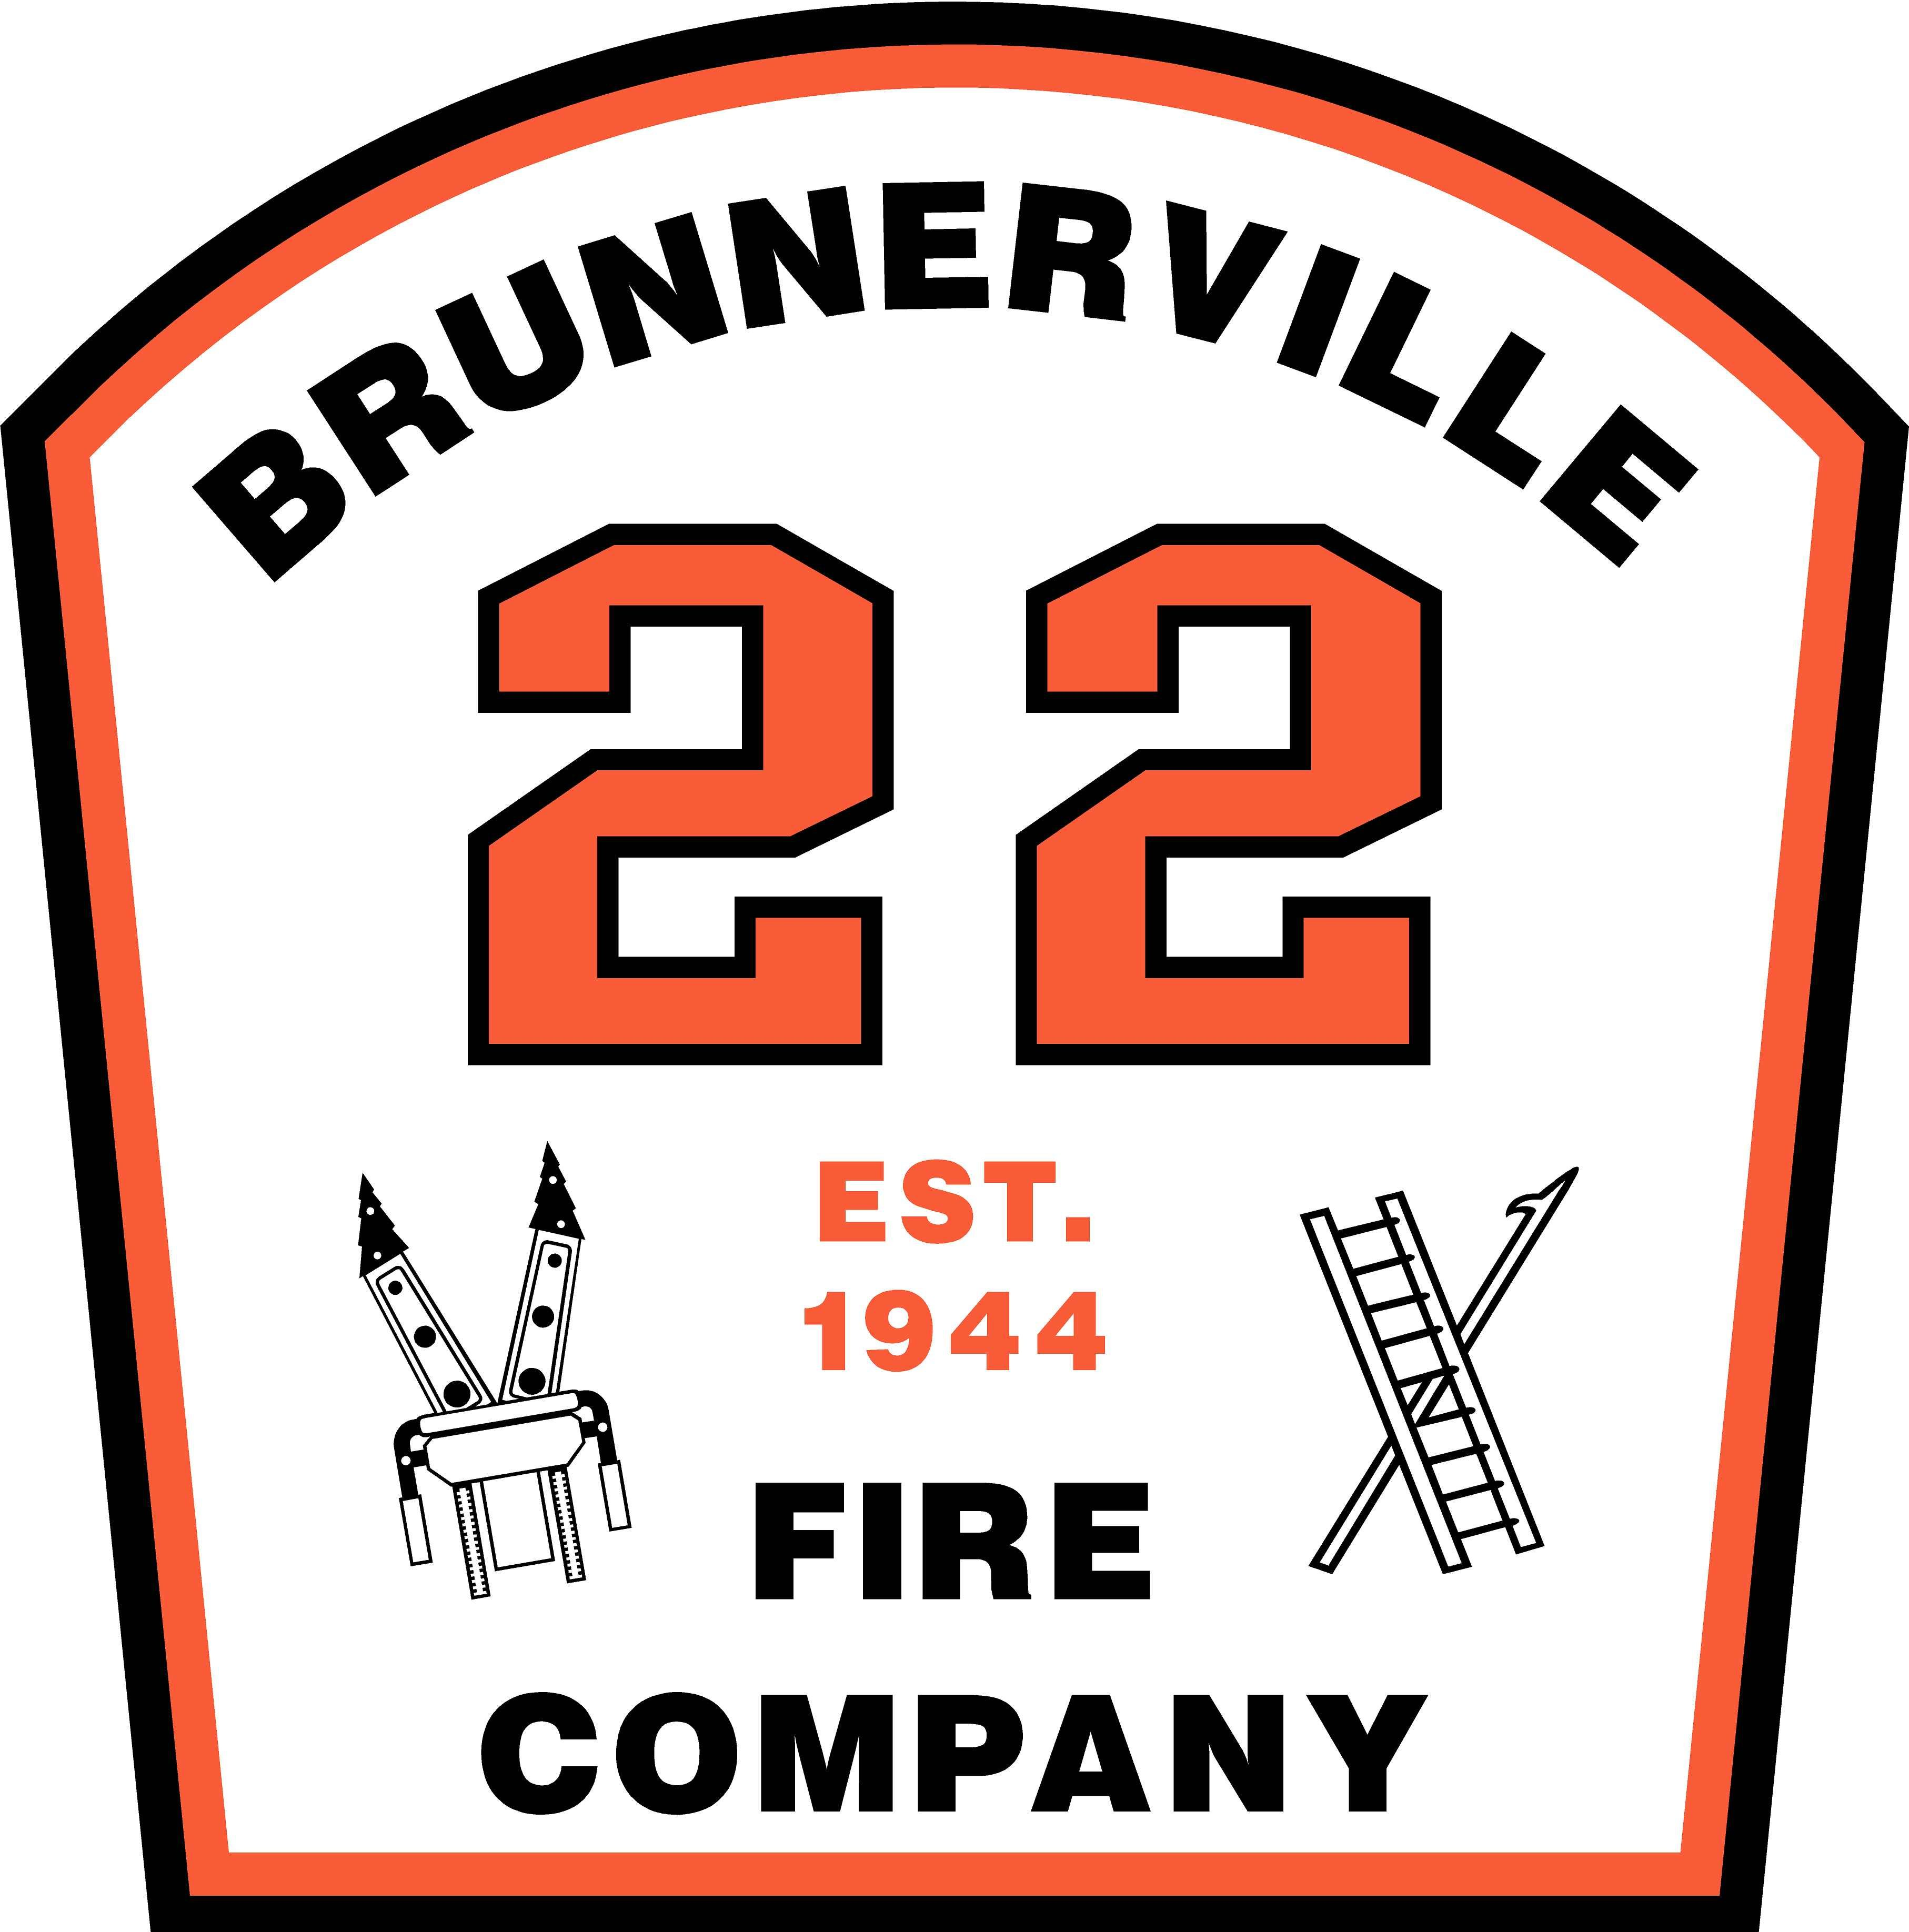 Brunnerville Fire Company